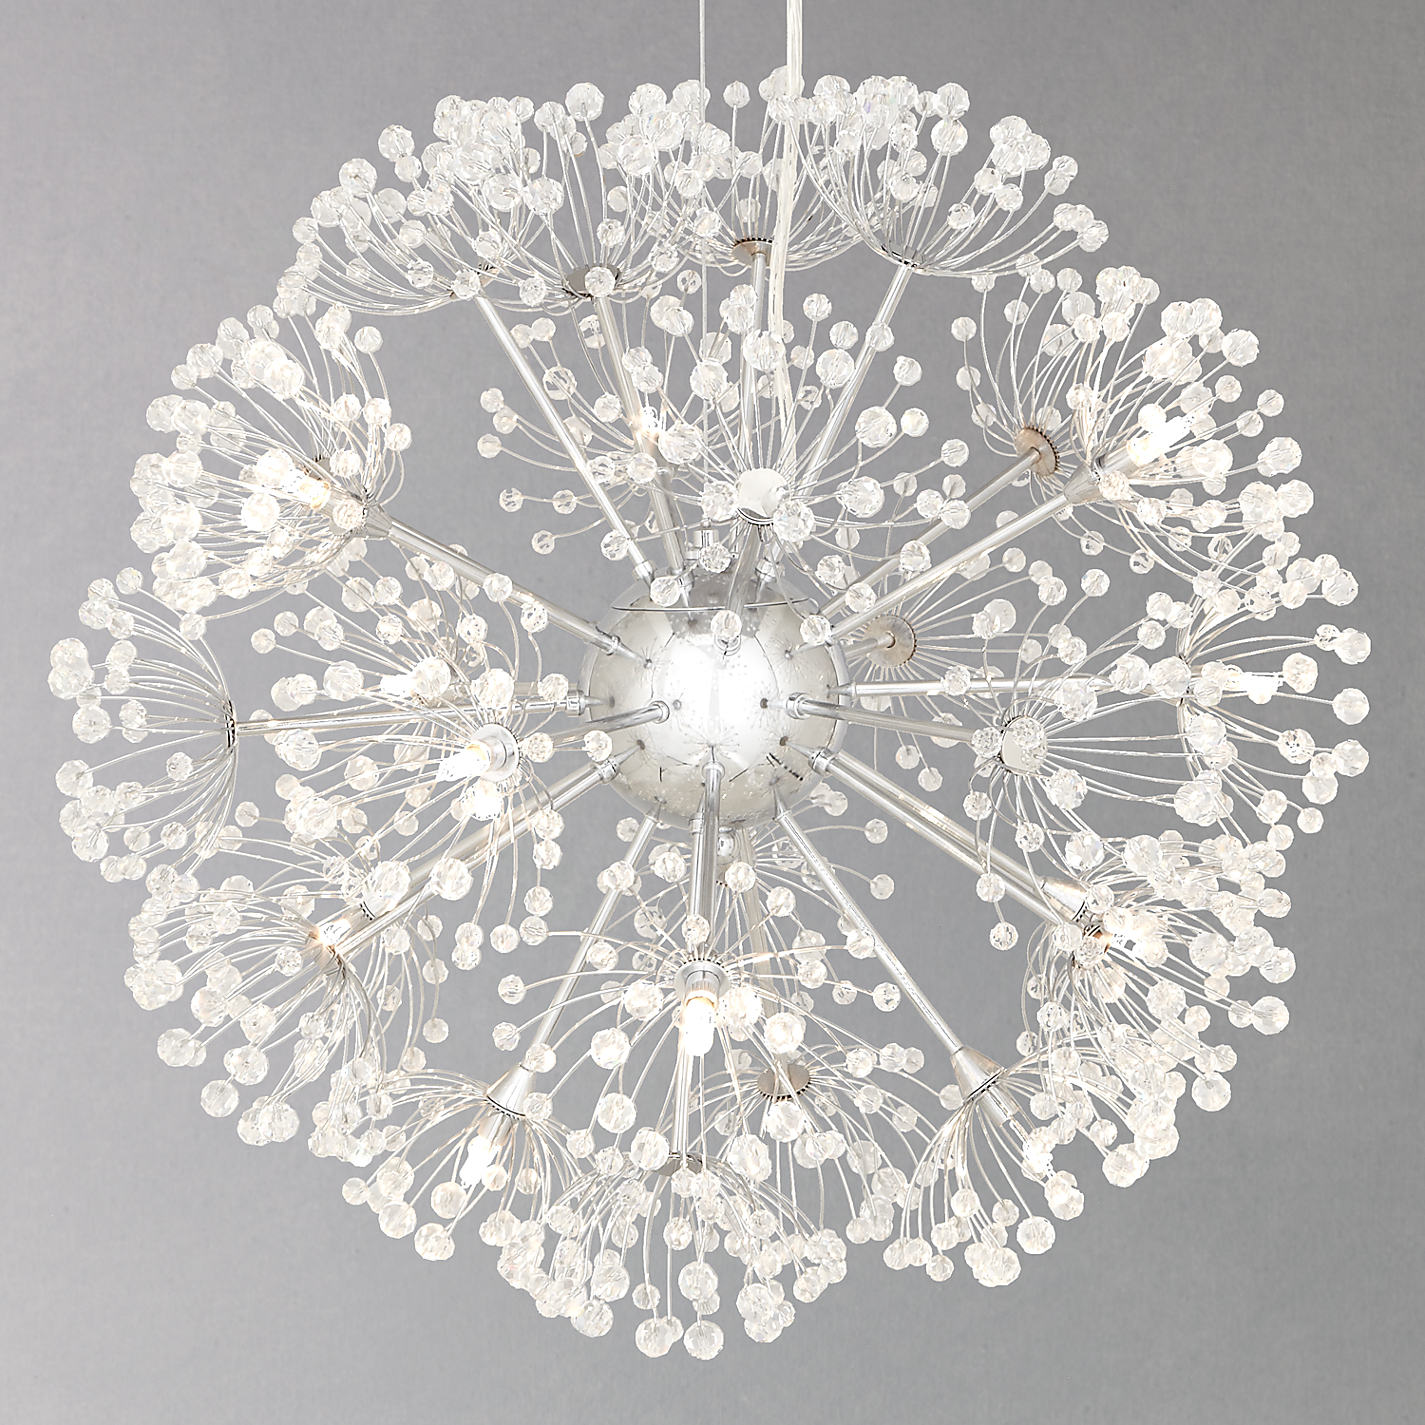 Buy john lewis alium ceiling light john lewis buy john lewis alium ceiling light online at johnlewis mozeypictures Image collections